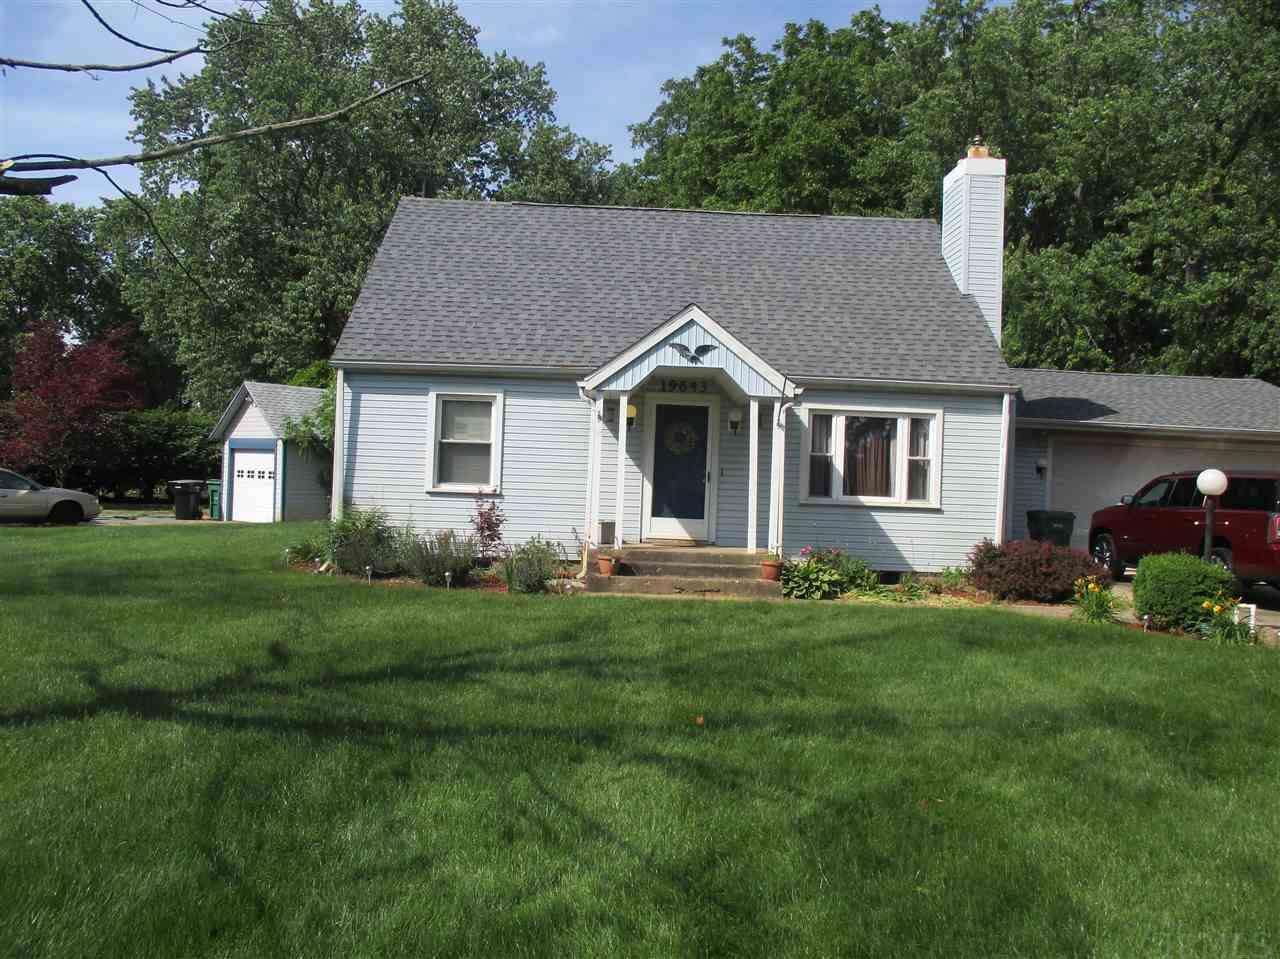 19643 S Paxson, South Bend, IN 46637